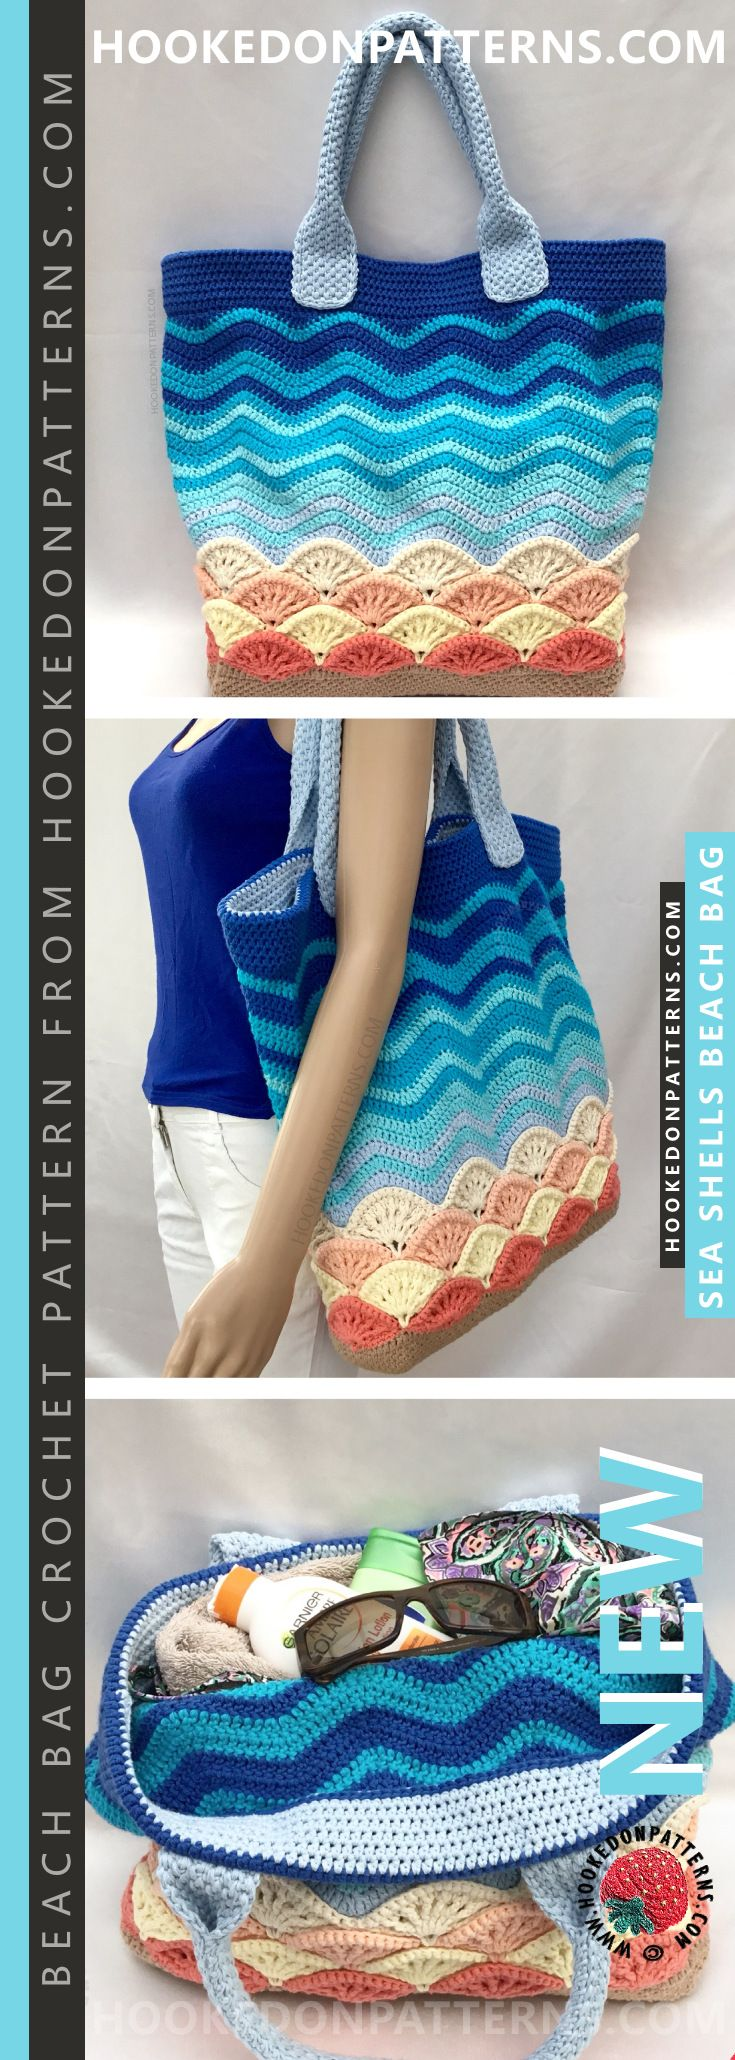 This beach bag crochet pattern is for a large tote bag with a beach themed desig…